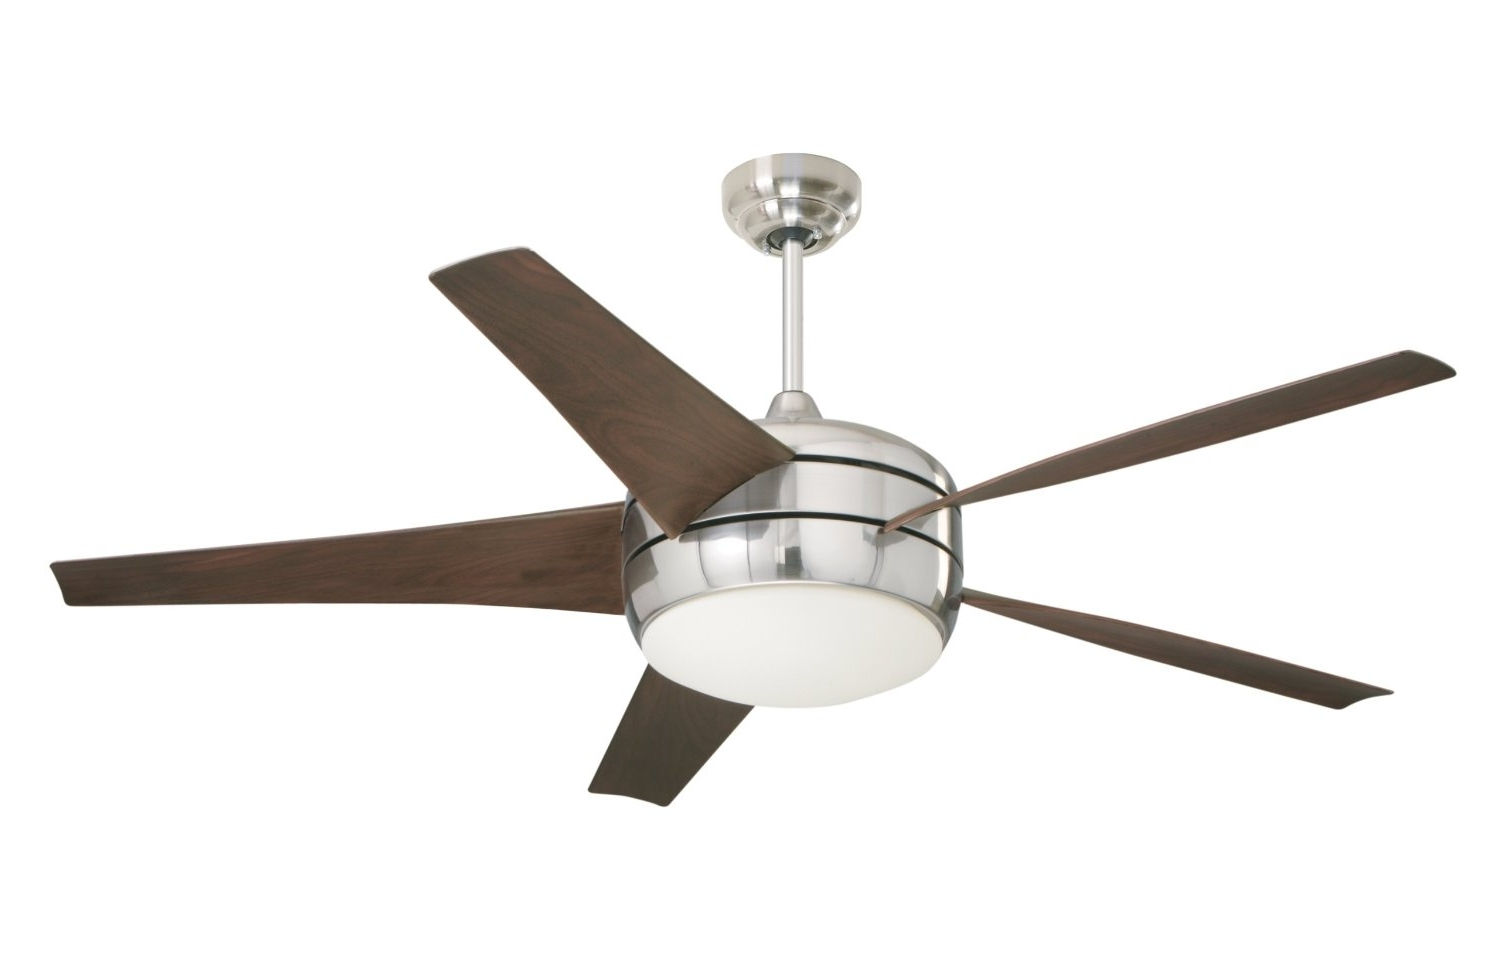 Best And Newest Best Ceiling Fans Reviews, Buying Guide And Comparison 2018 Pertaining To Efficient Outdoor Ceiling Fans (View 2 of 20)